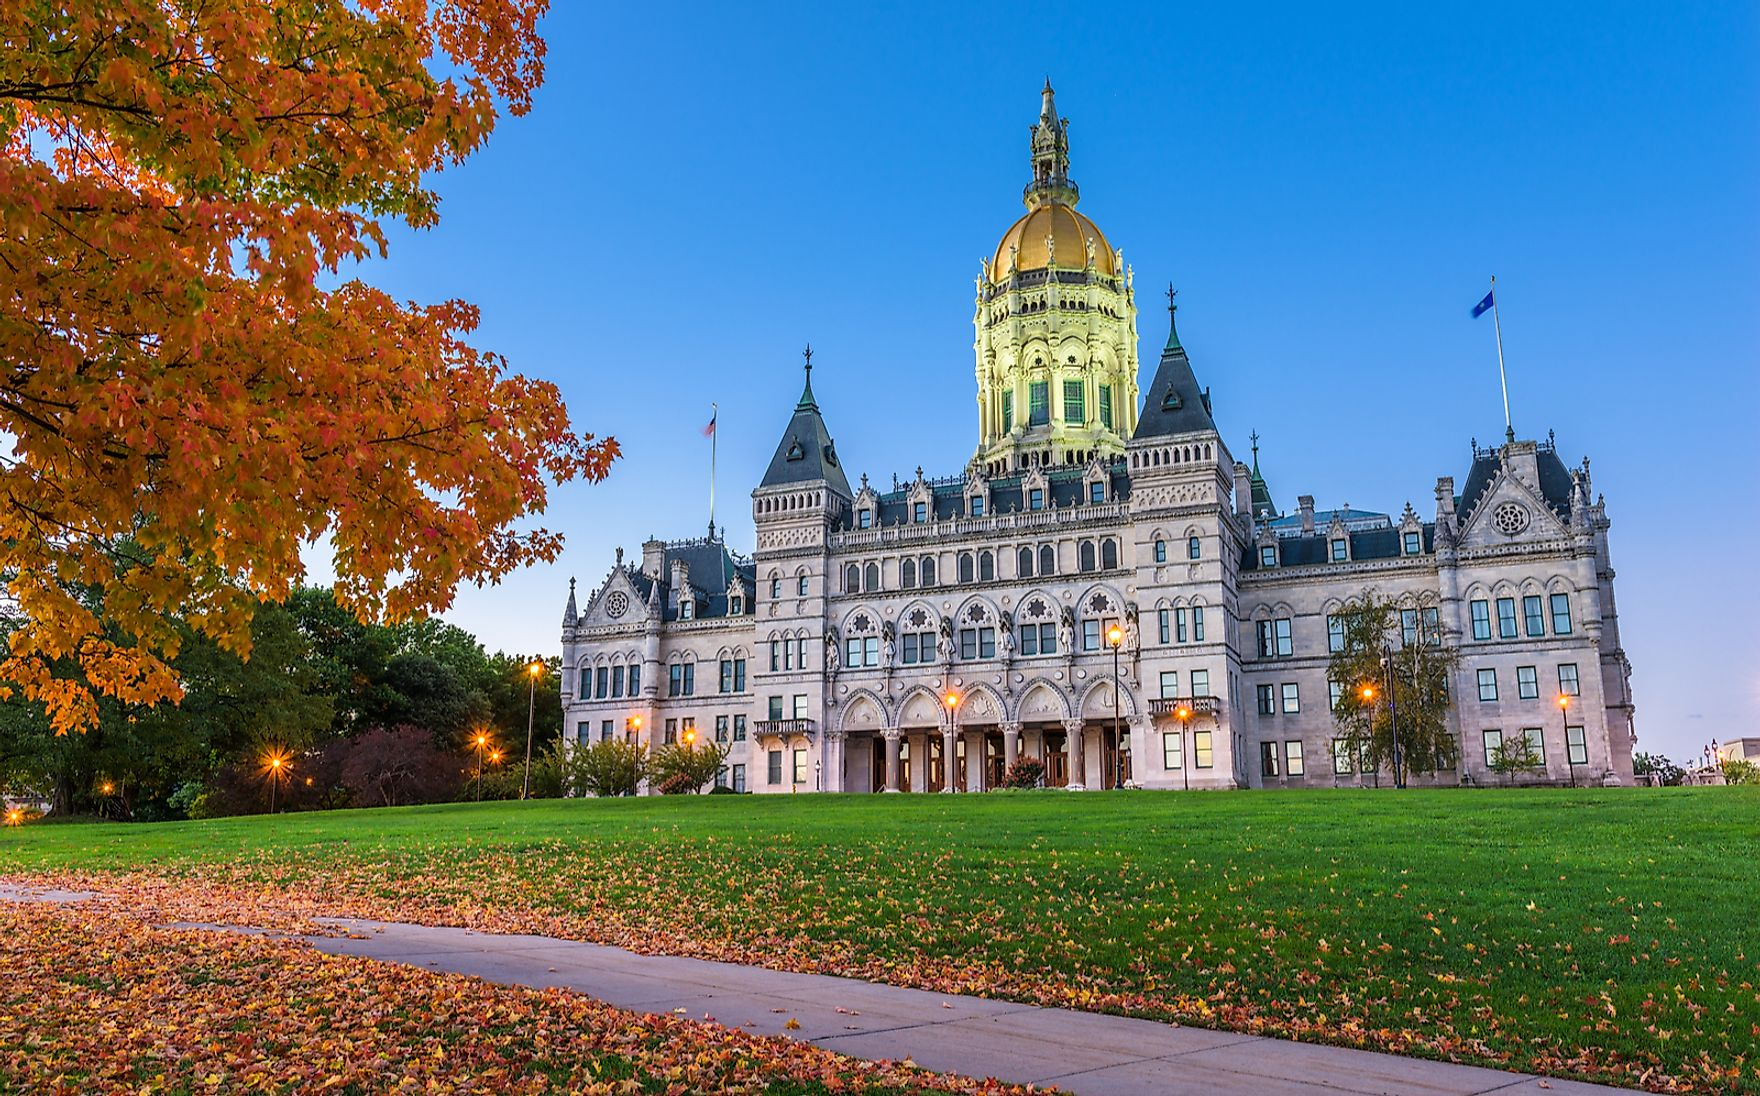 The State Capitol of Connecticut.